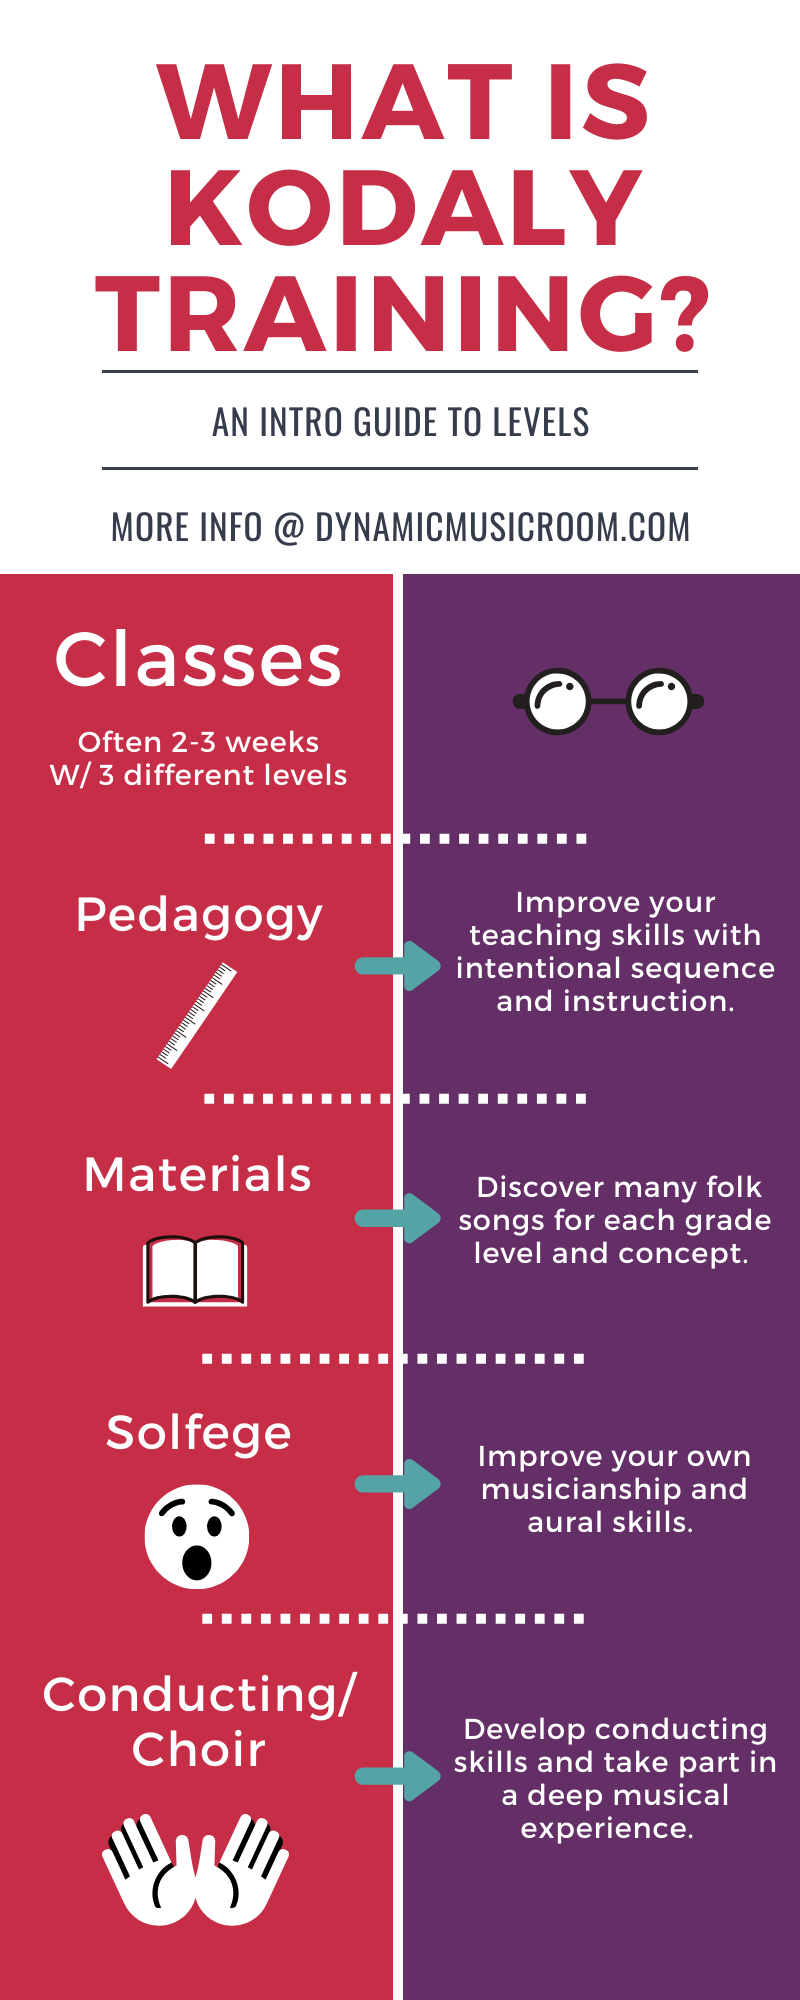 image what is kodaly training infographic